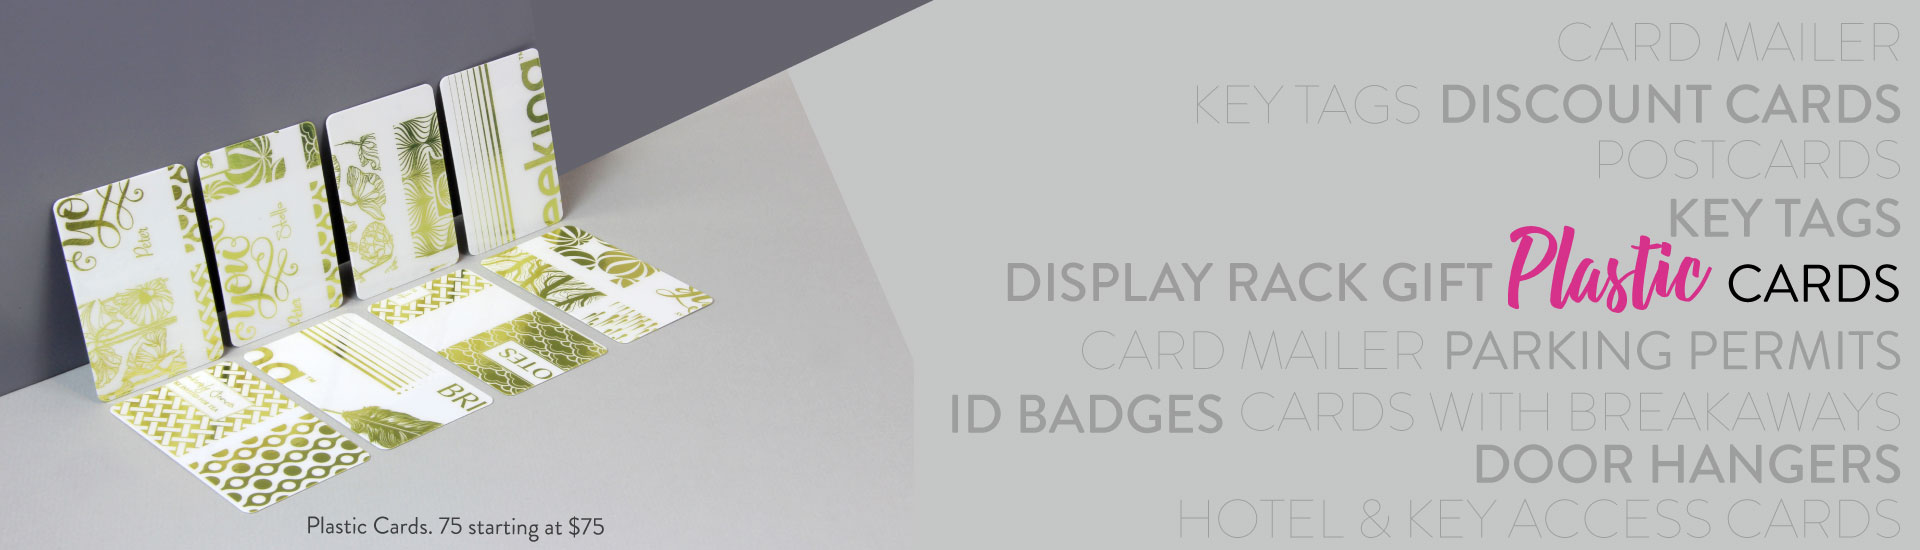 Plastic Card Products